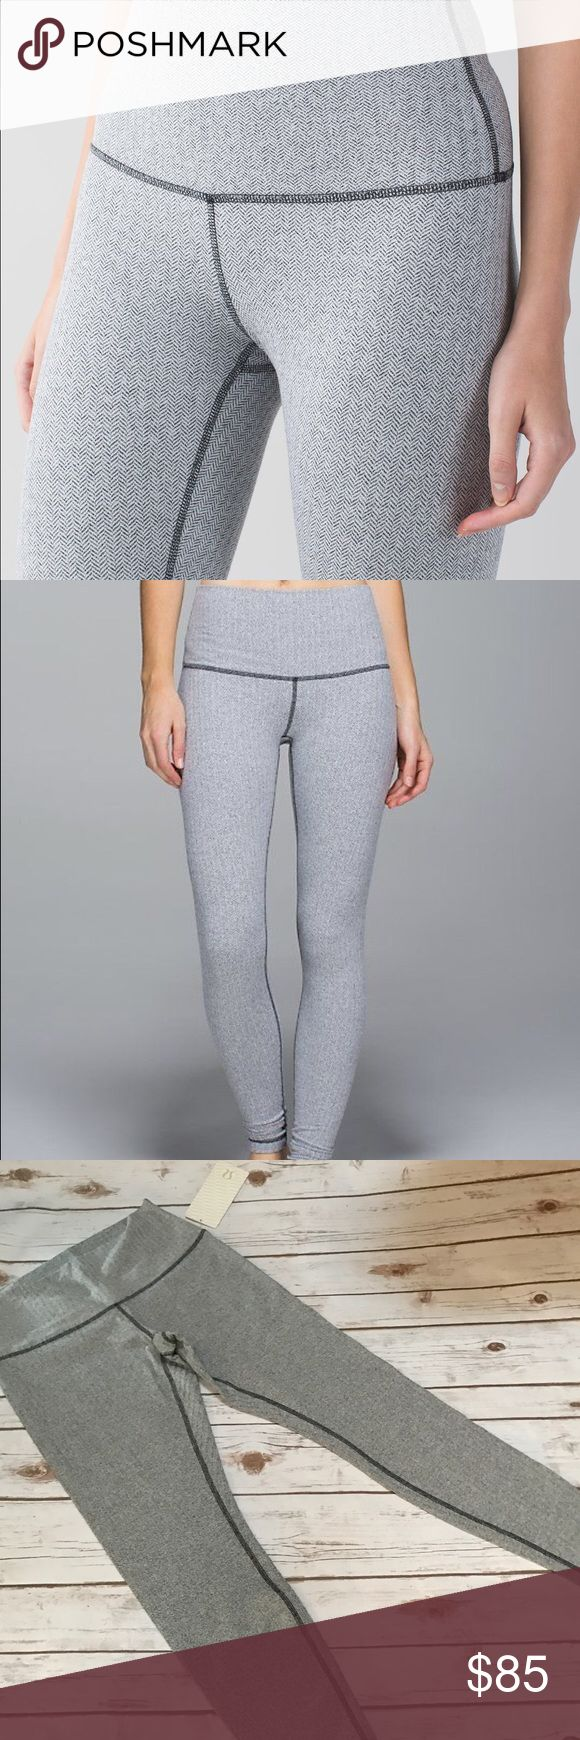 Lululemon Wunder Under Pant Roll Down size 12 Color is heathered herringbone. NWT. size 12. Color is accurate in stock photos lululemon athletica Pants Leggings